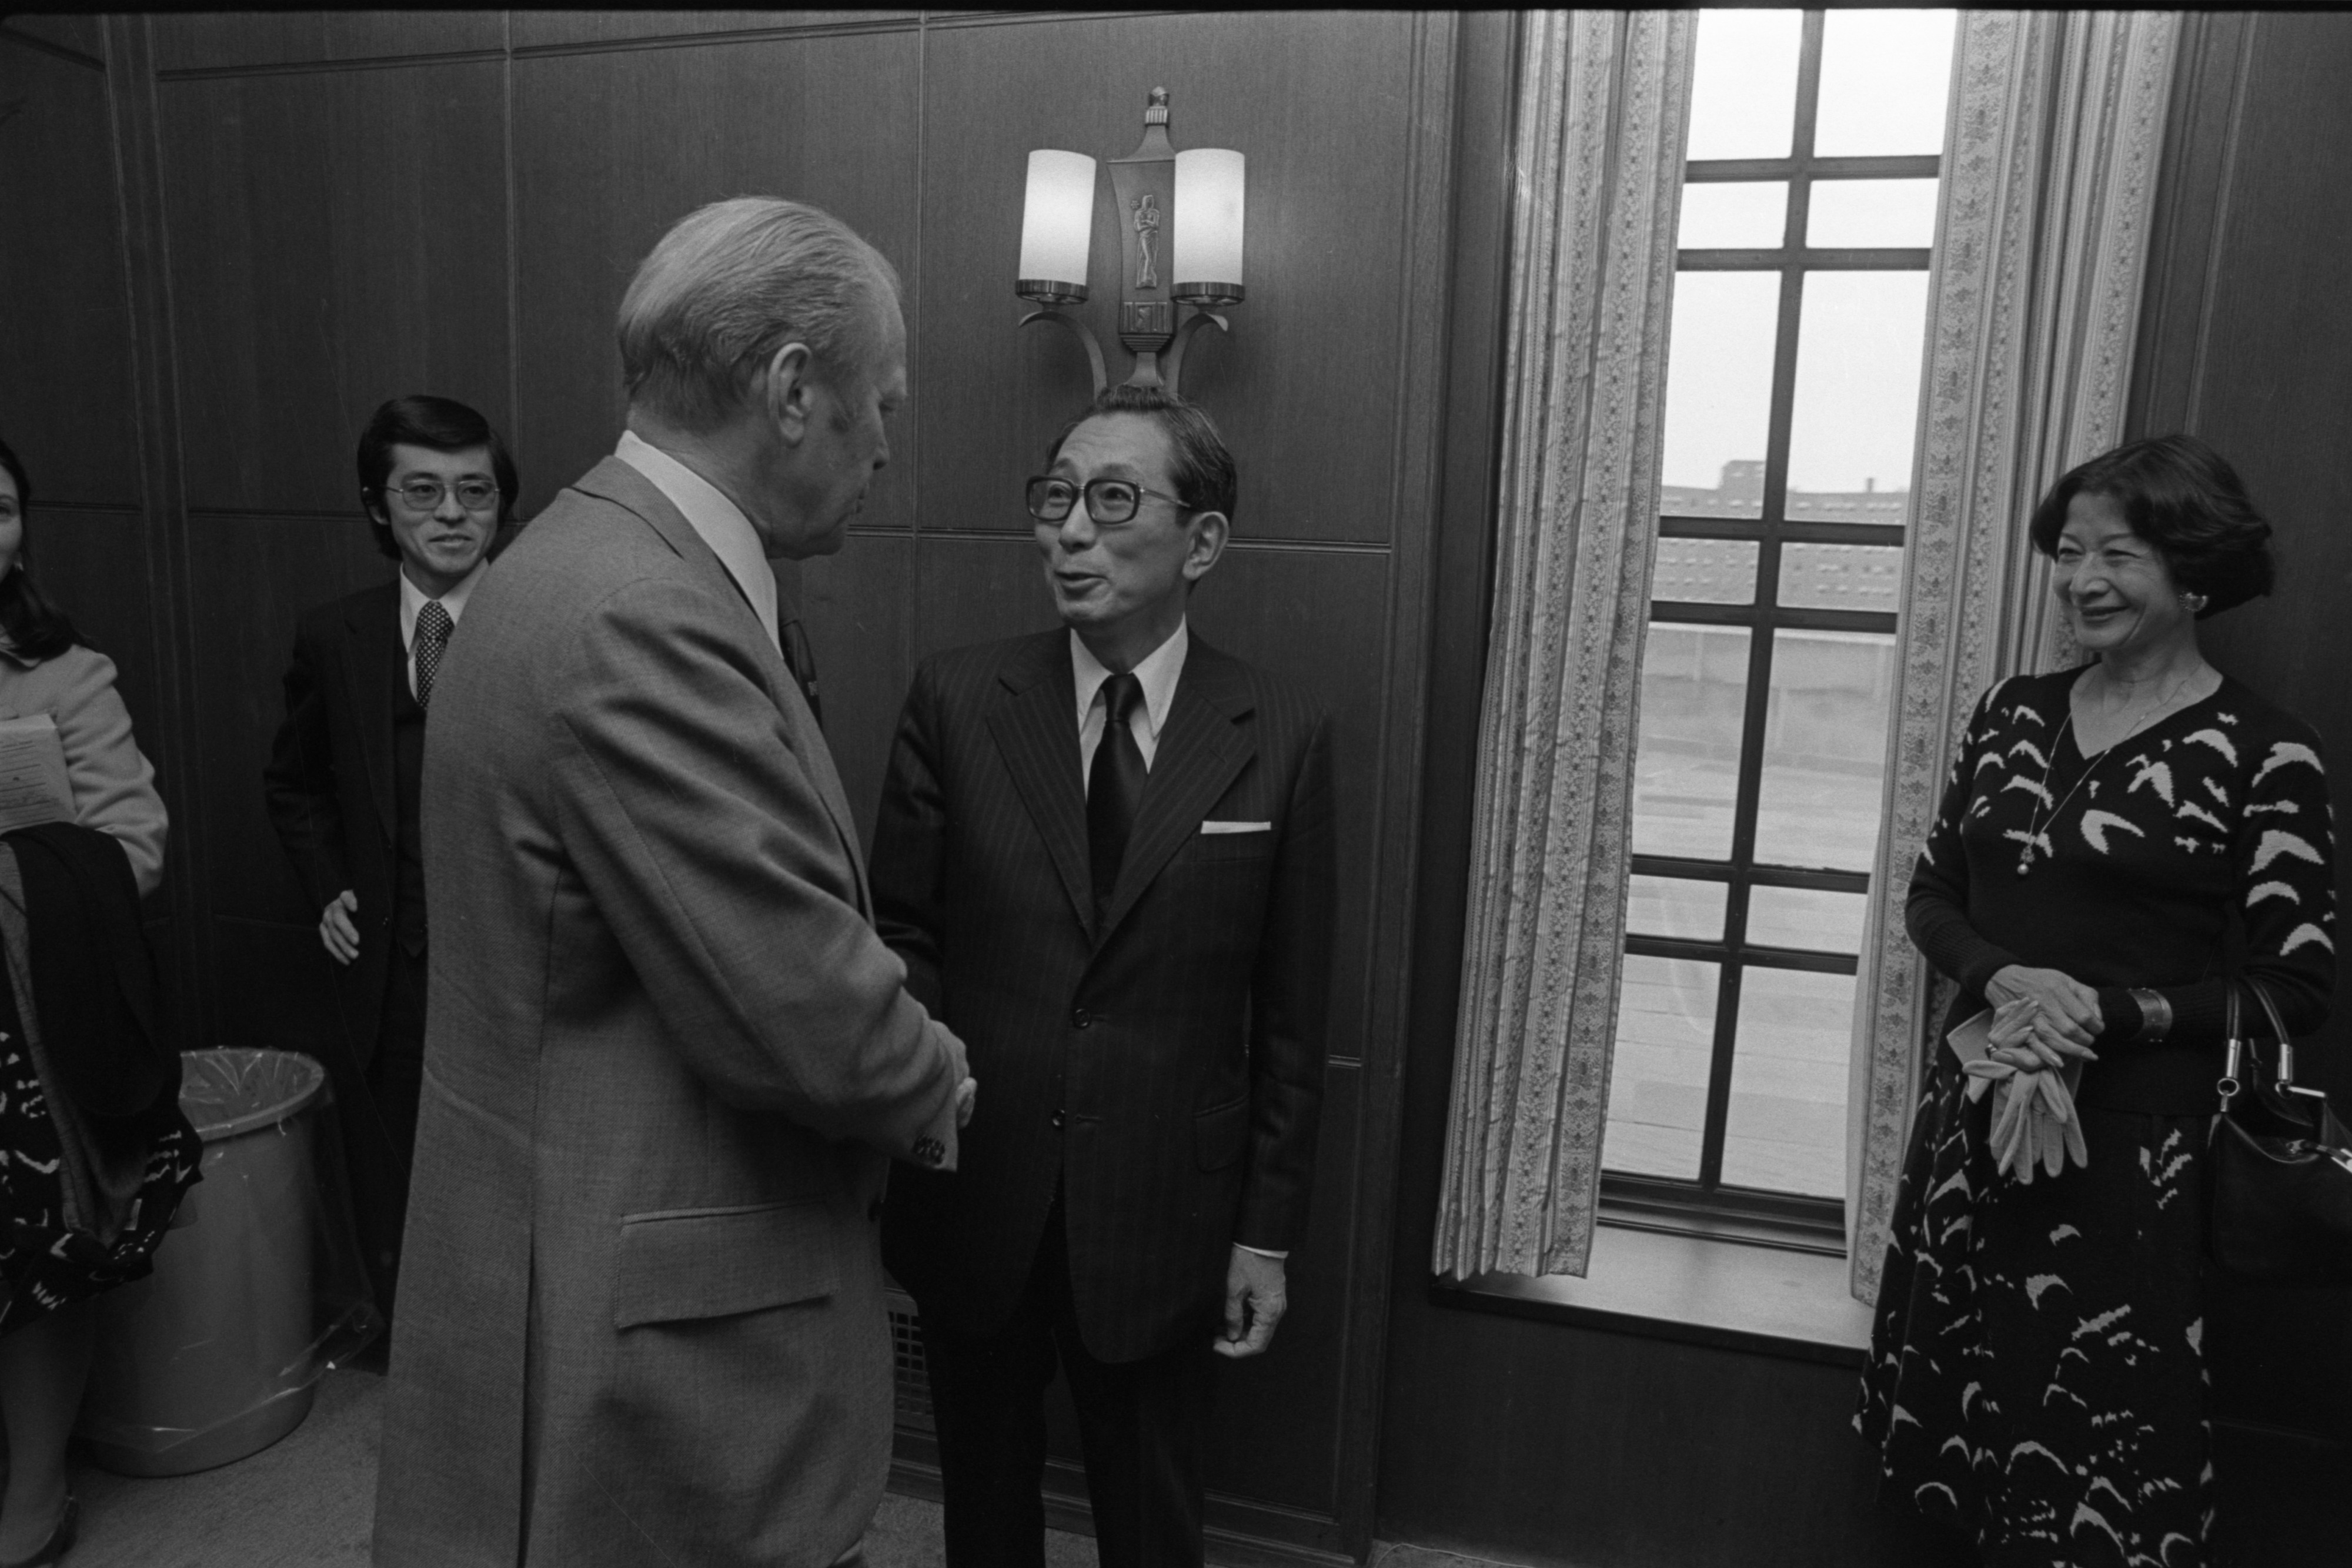 Gerald Ford Meets Japanese Ambassador To The U.S., Fumihiko Togo & His Wife, Ise, September 1977 image